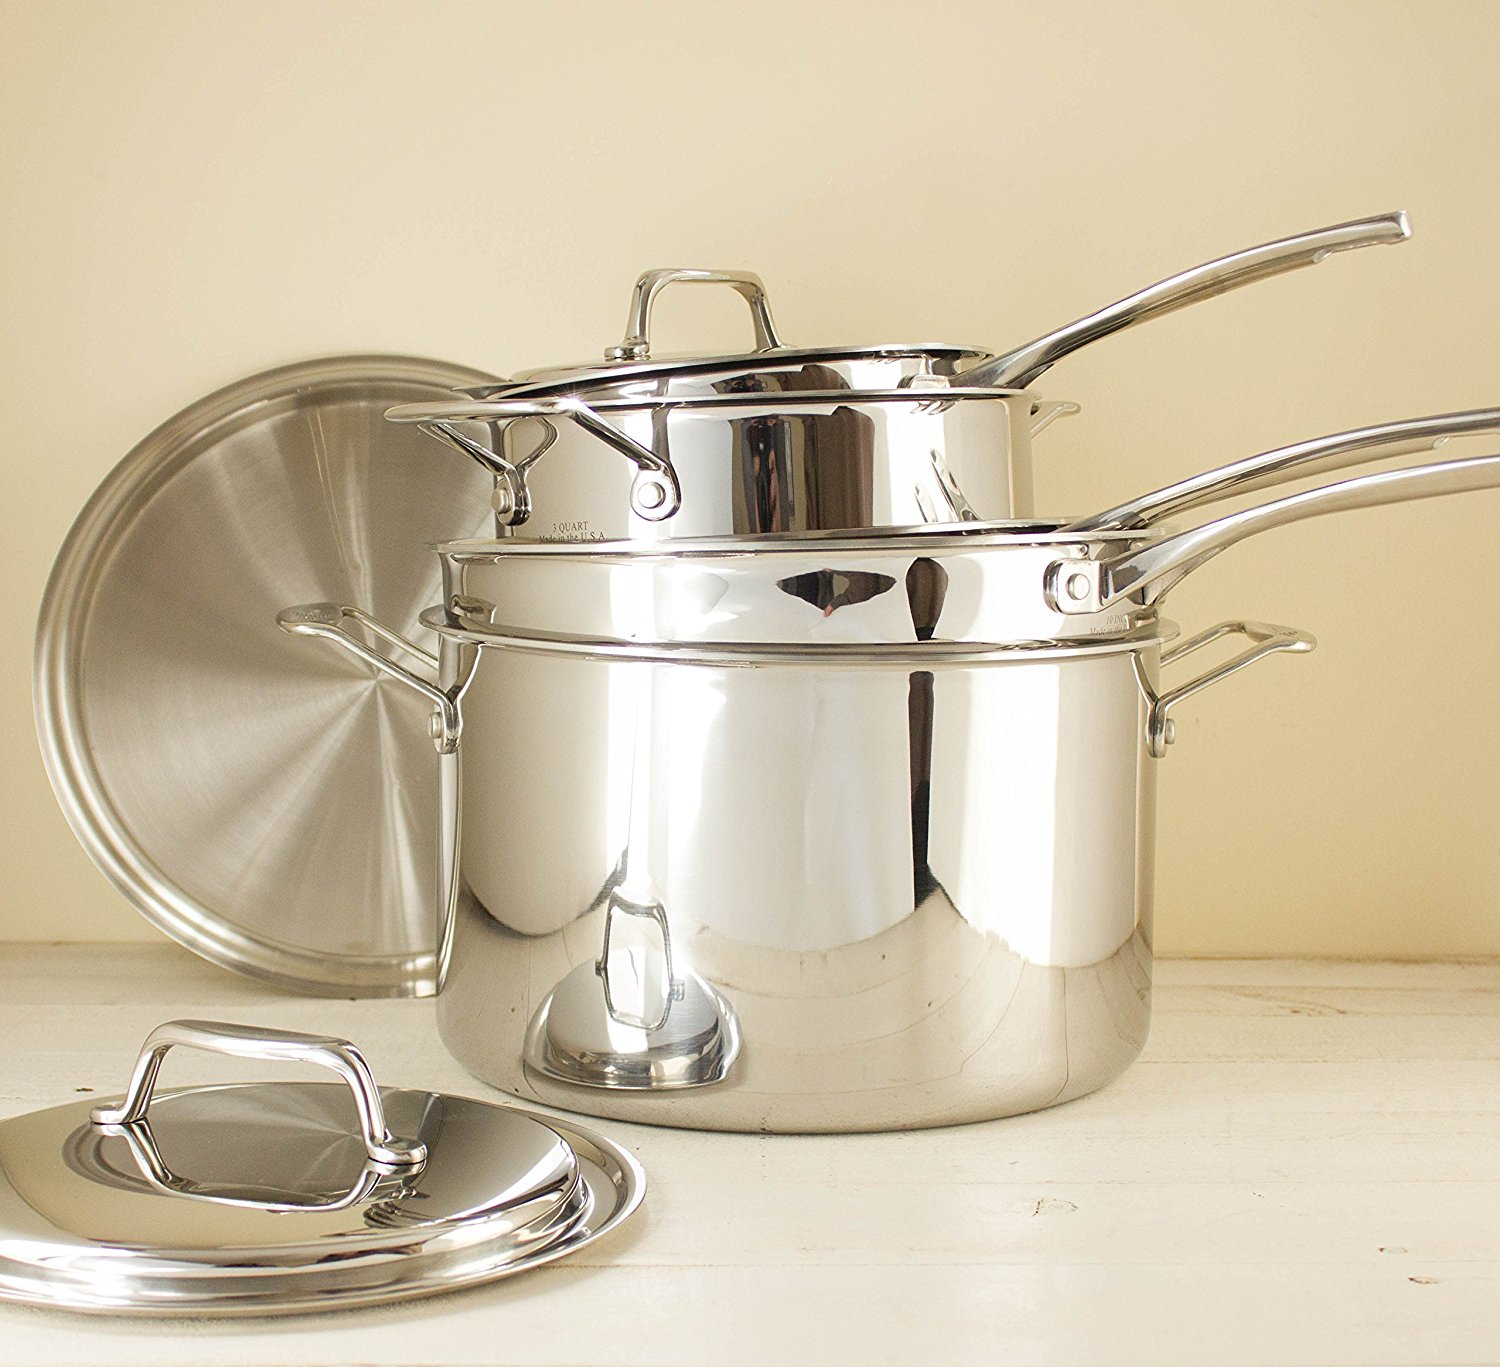 USA Pan Cookware